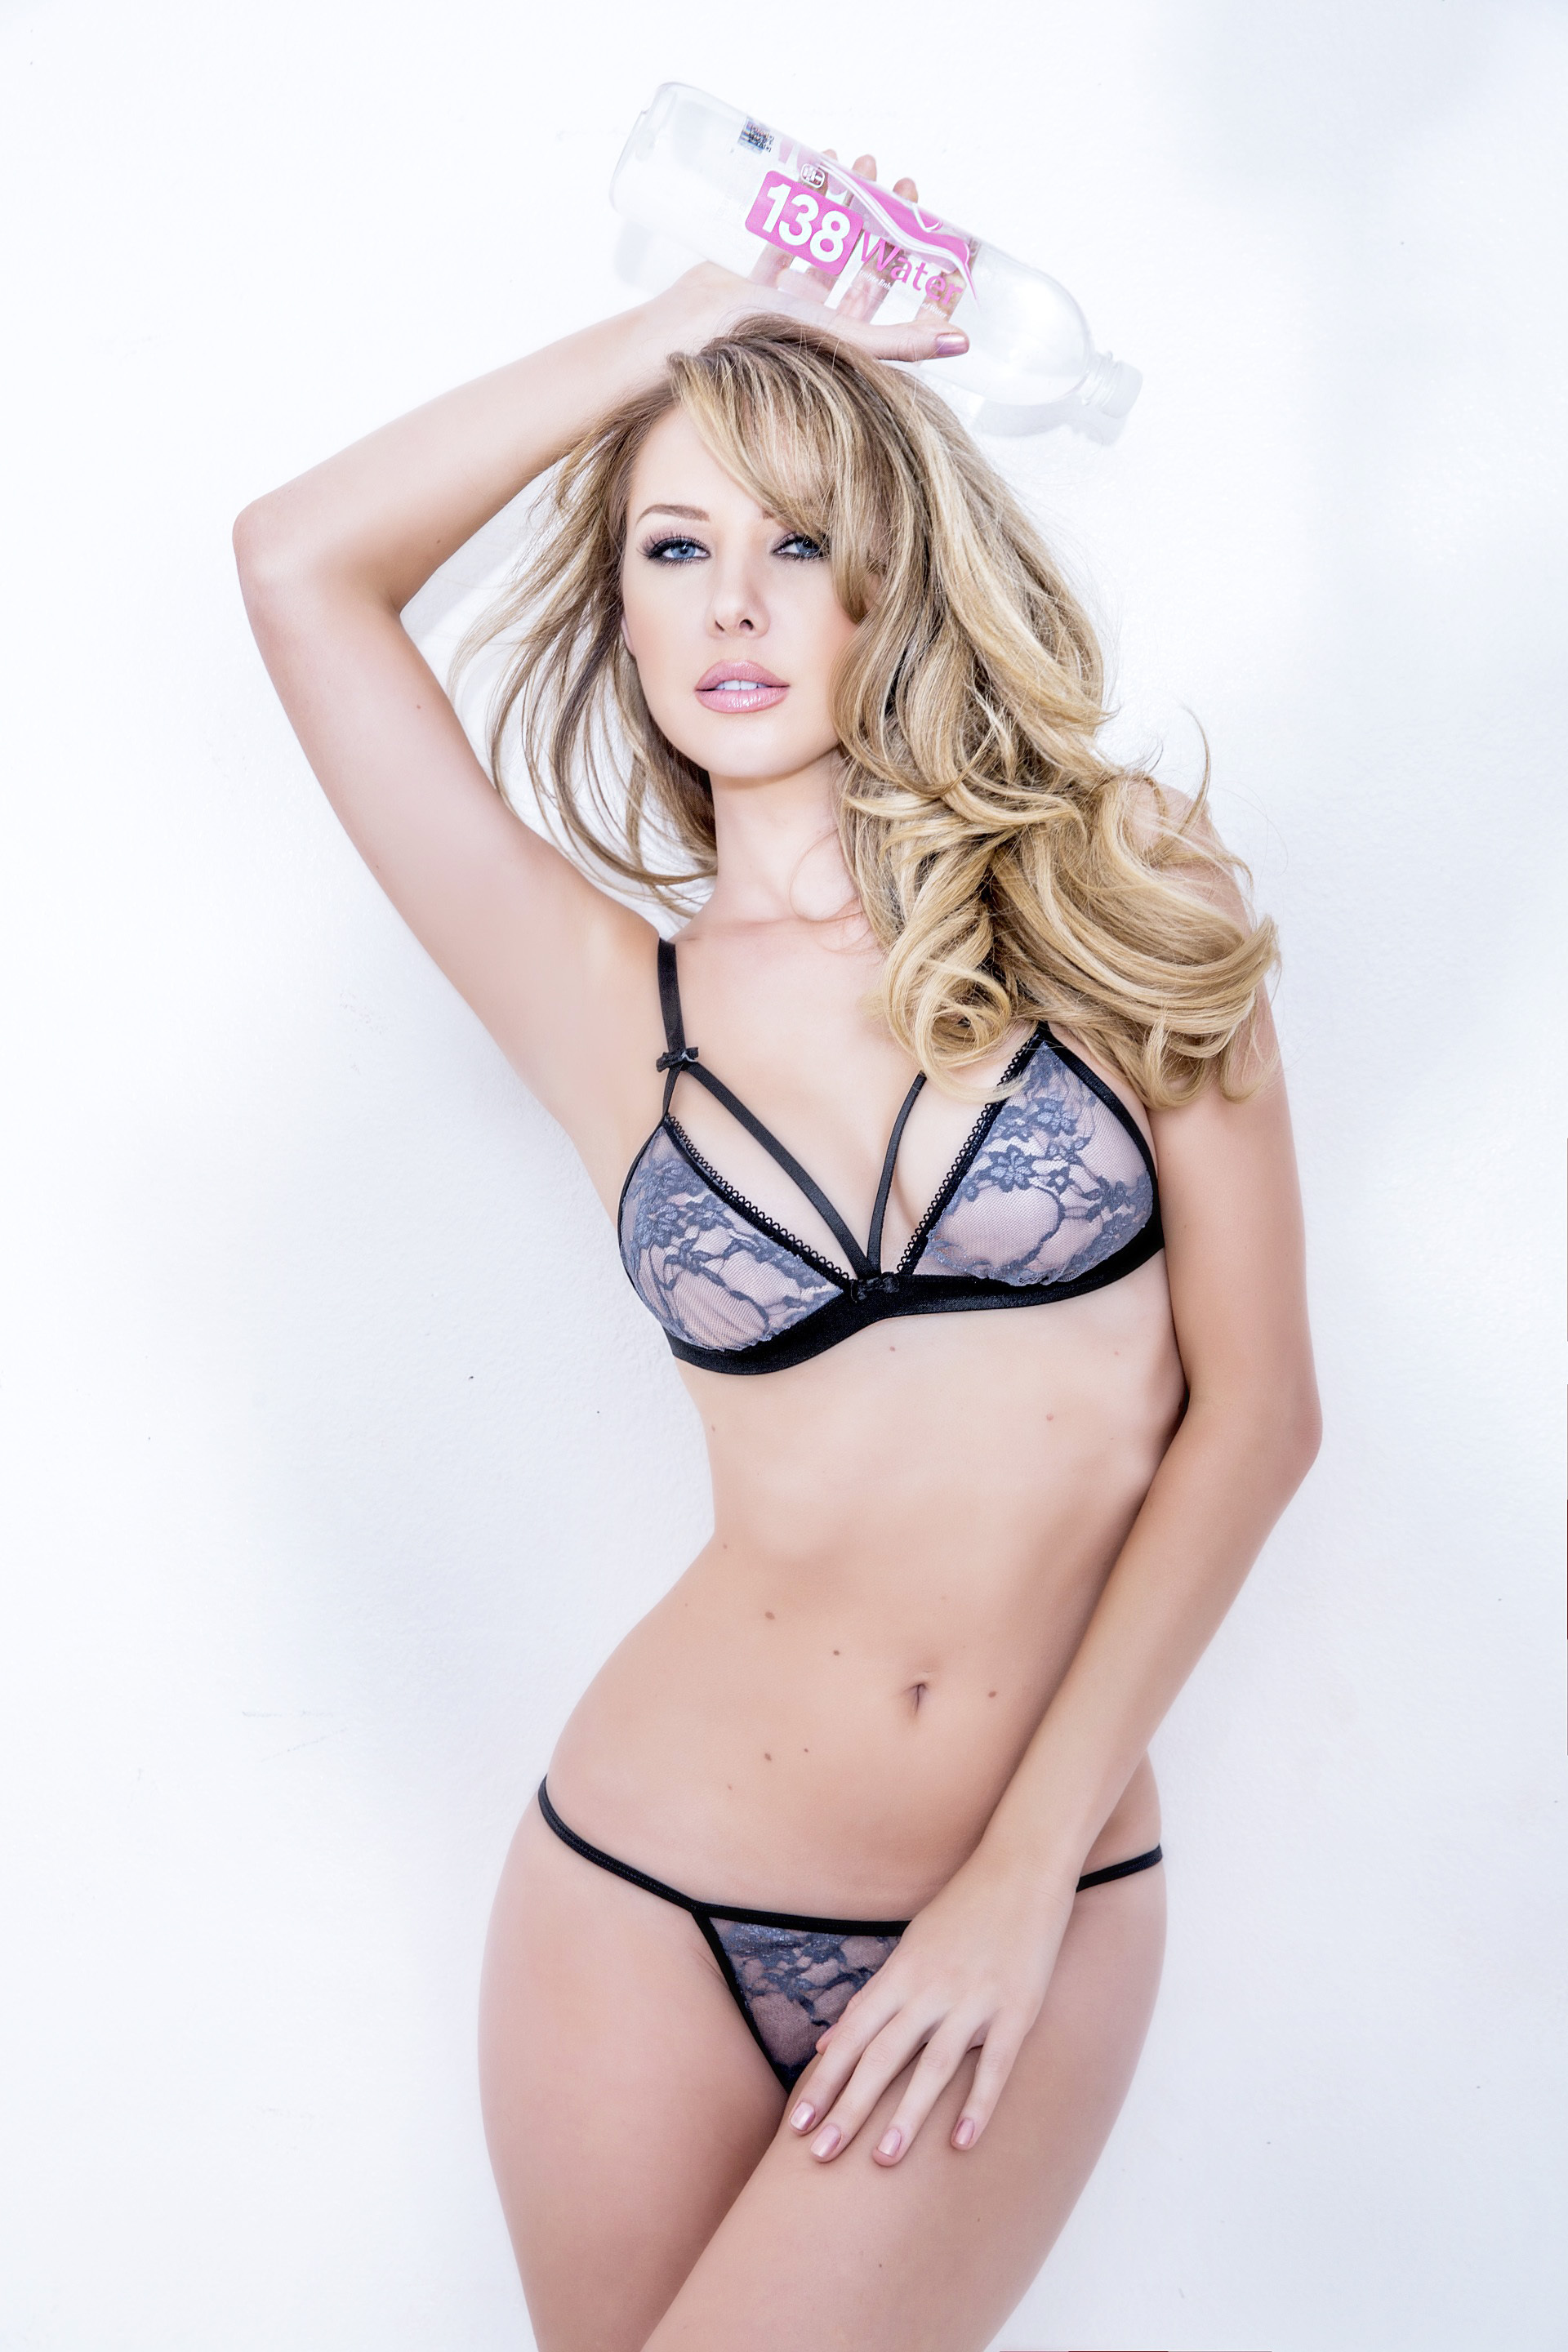 Tiffany Toth High Quality Wallpapers For Iphone